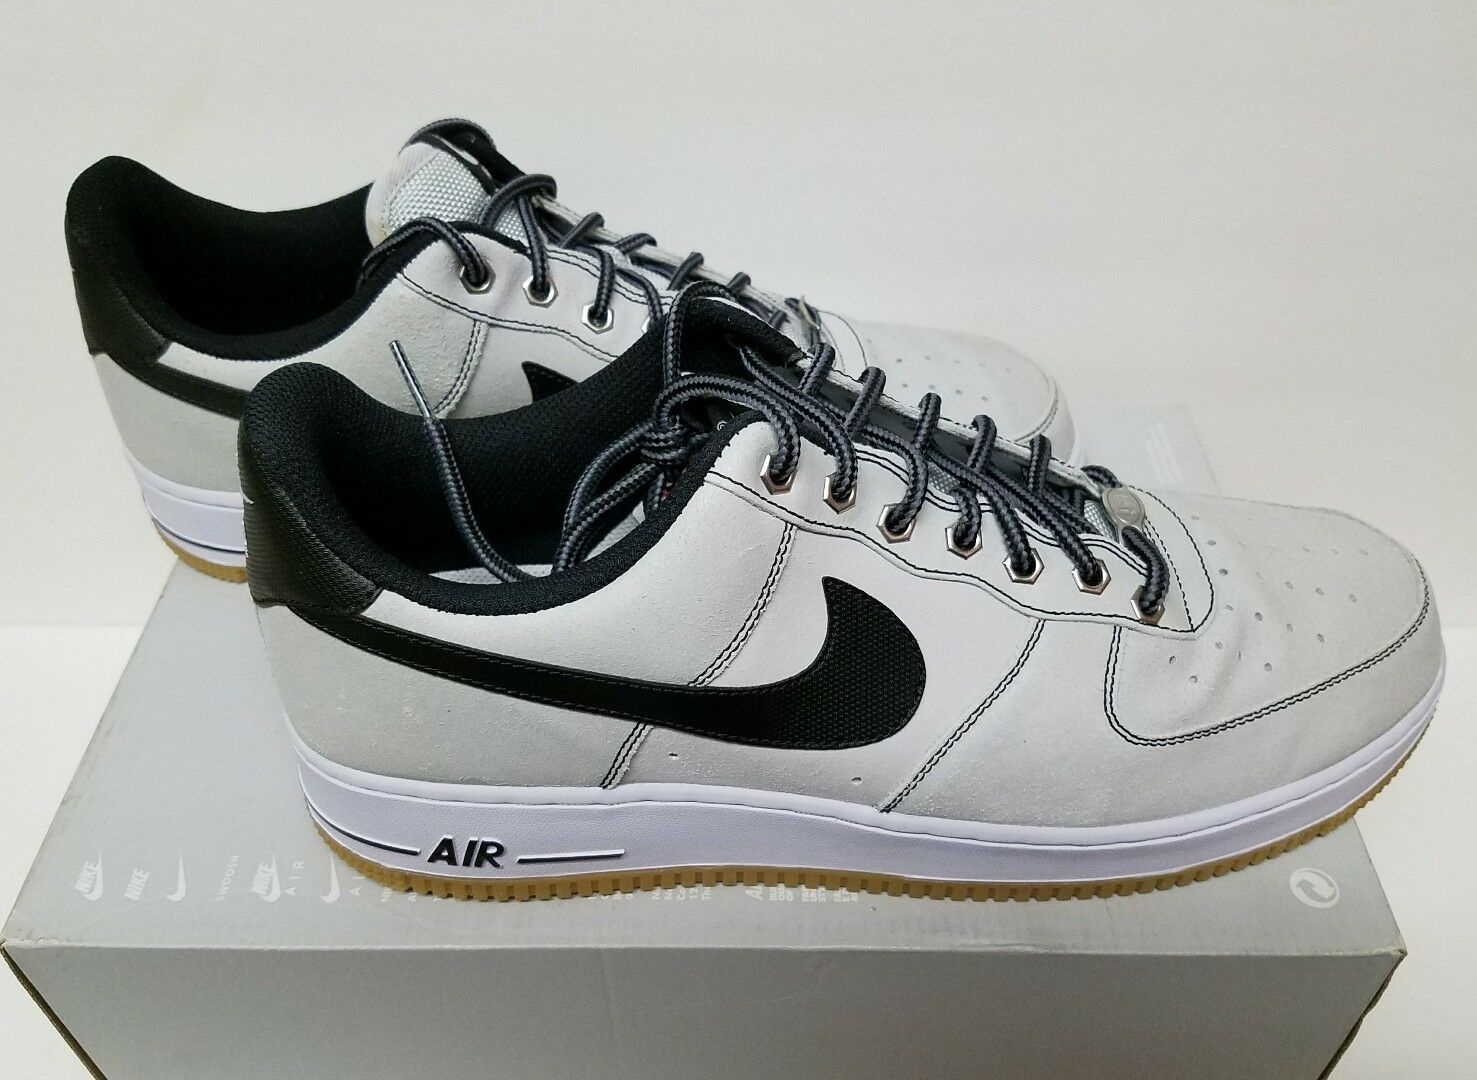 NIKE Air Force 1 Size 12 Platinum Gum Leather Shoes  488298-068